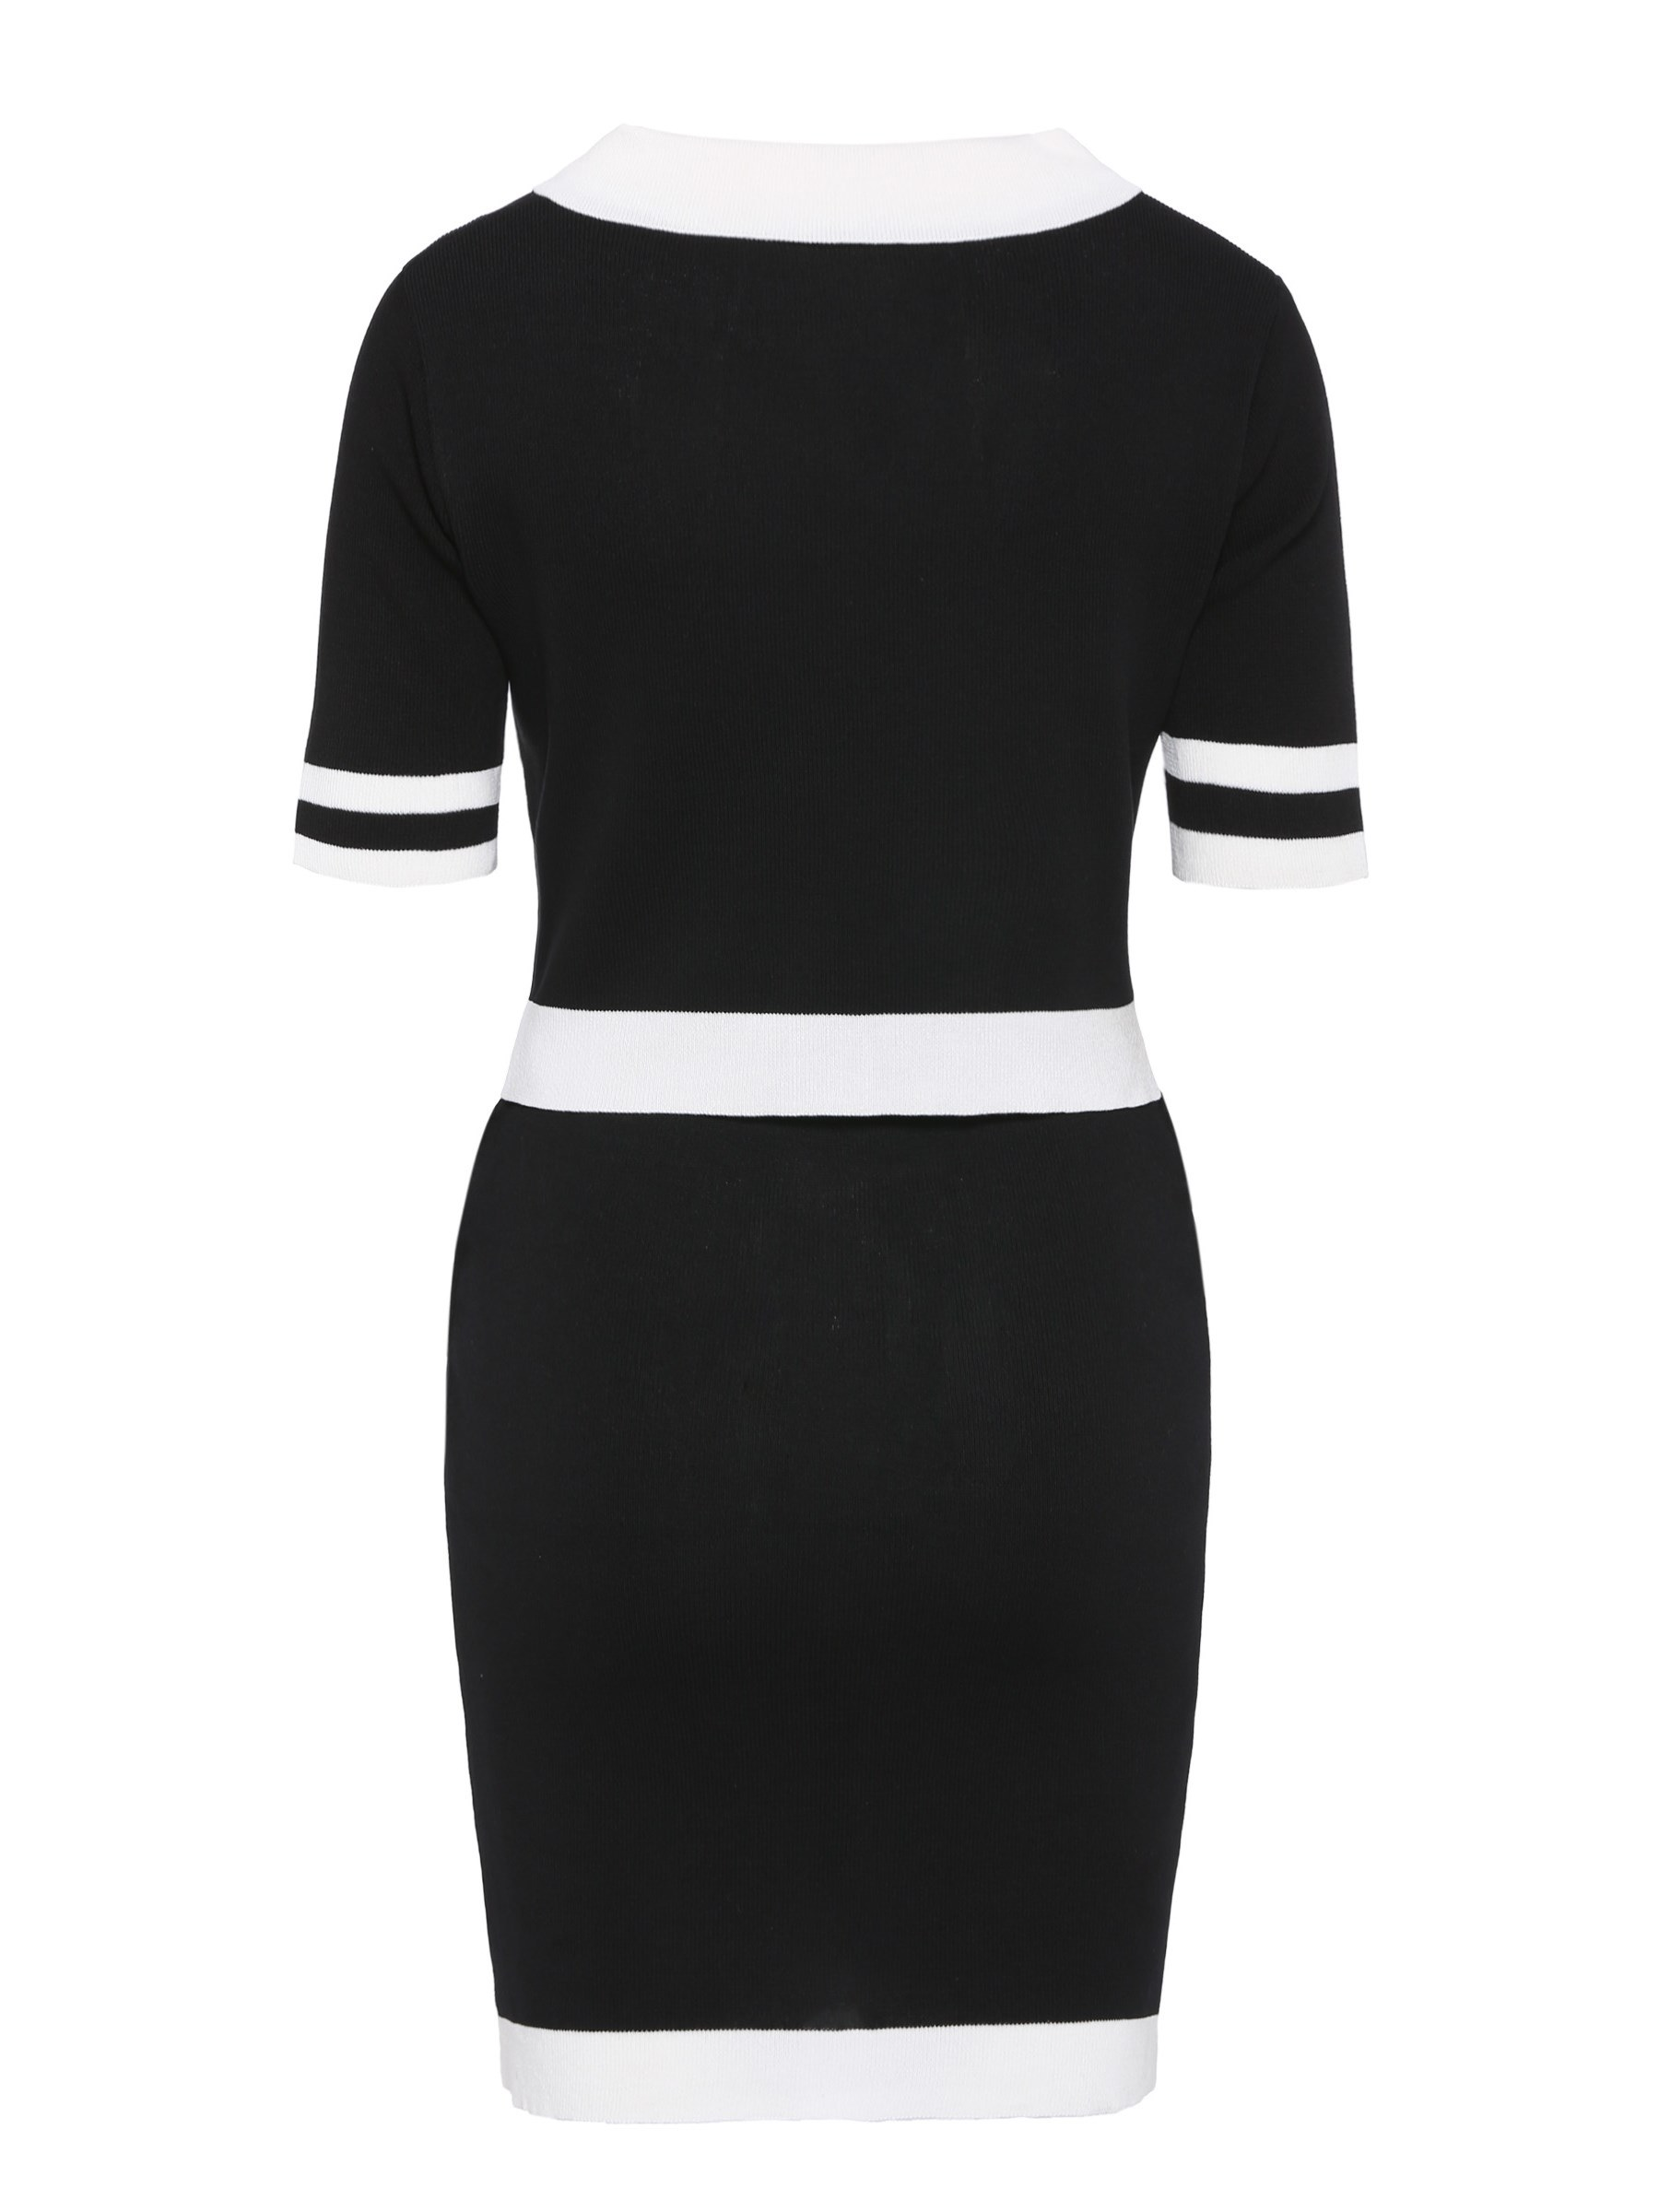 Ericdress Knee-Length Skirt and T-Shirt Women's Two Piece Set